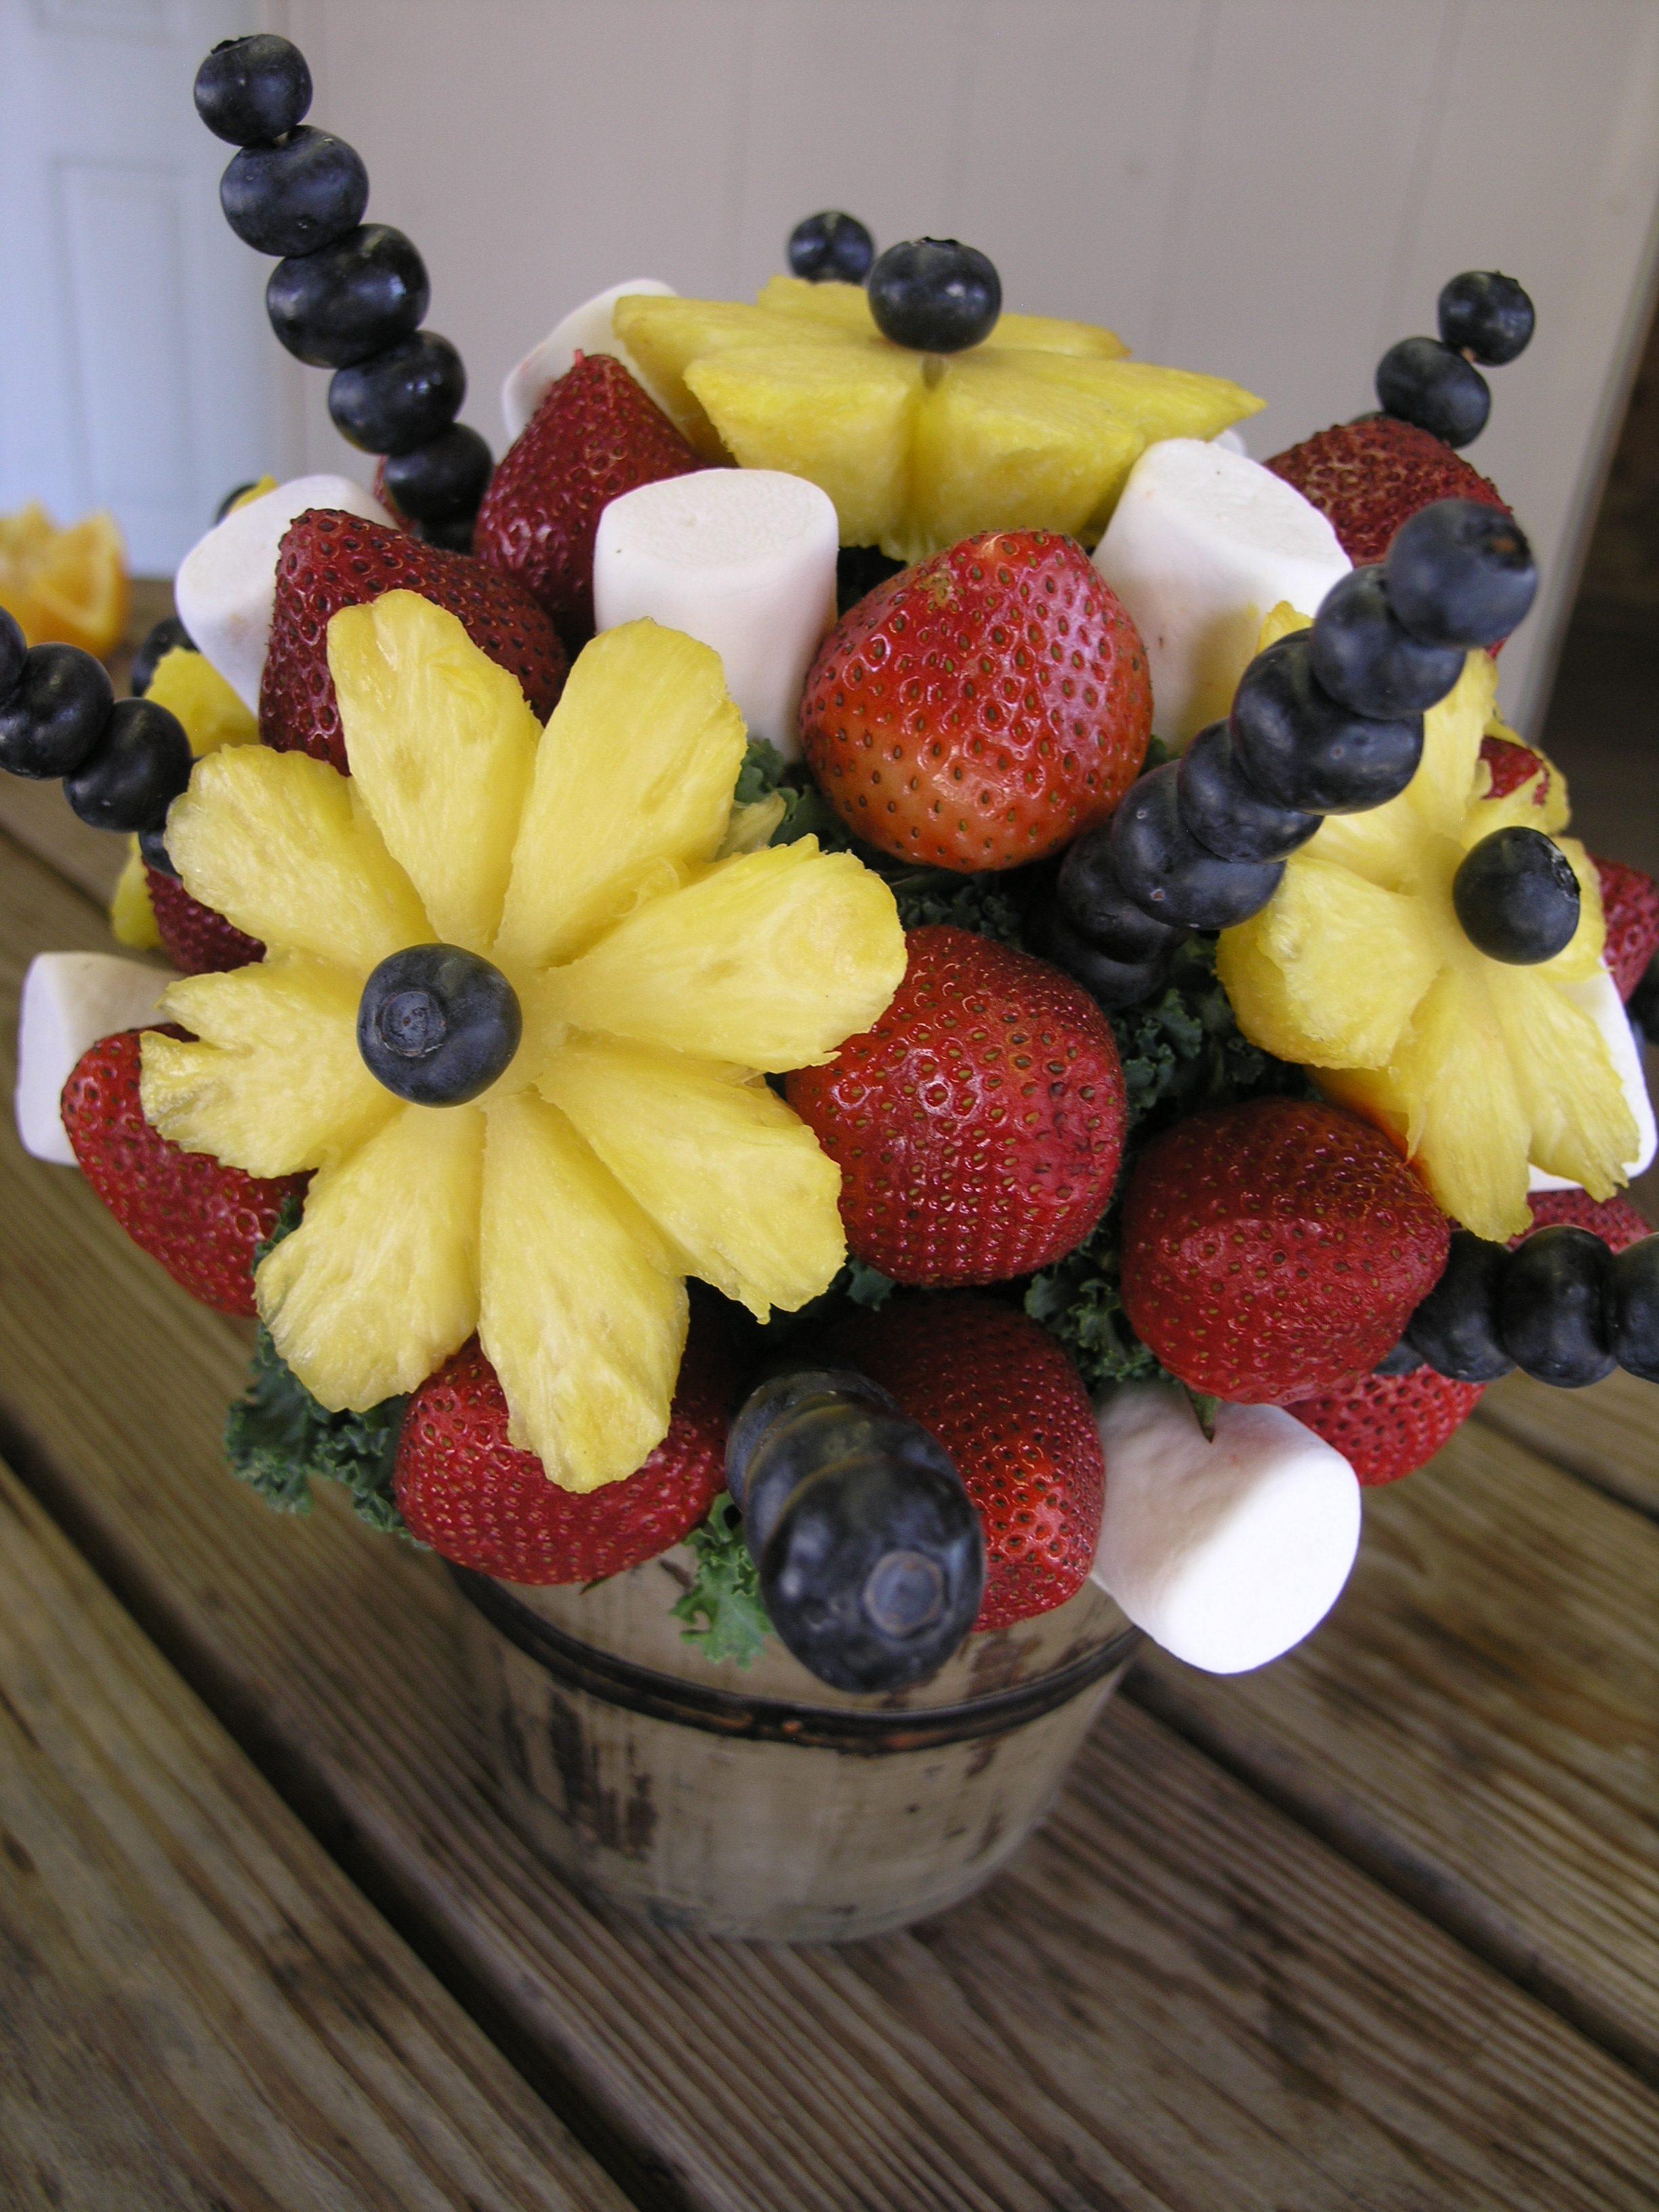 Designer Fruit Basket Live Food Creations Texas Farm Bureau Table Top